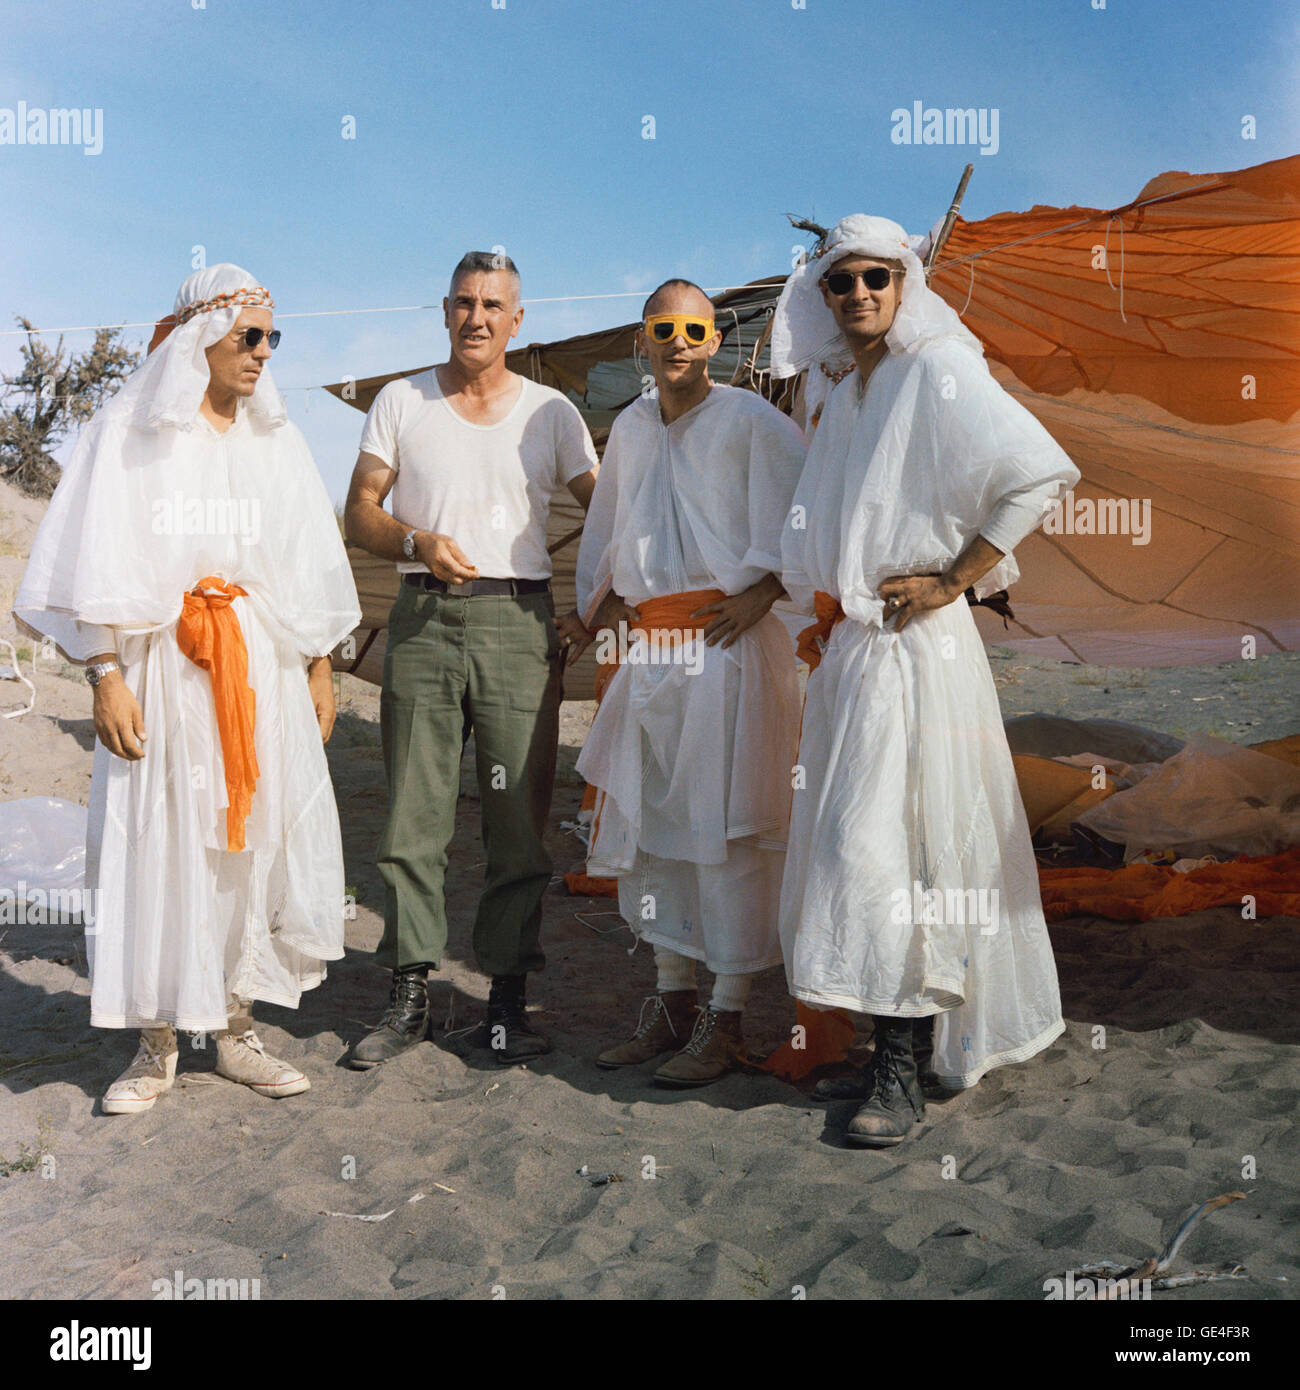 (August 14, 1967) Three astronauts participating in Apollo desert survival training in Washington state pose with Stock Photo